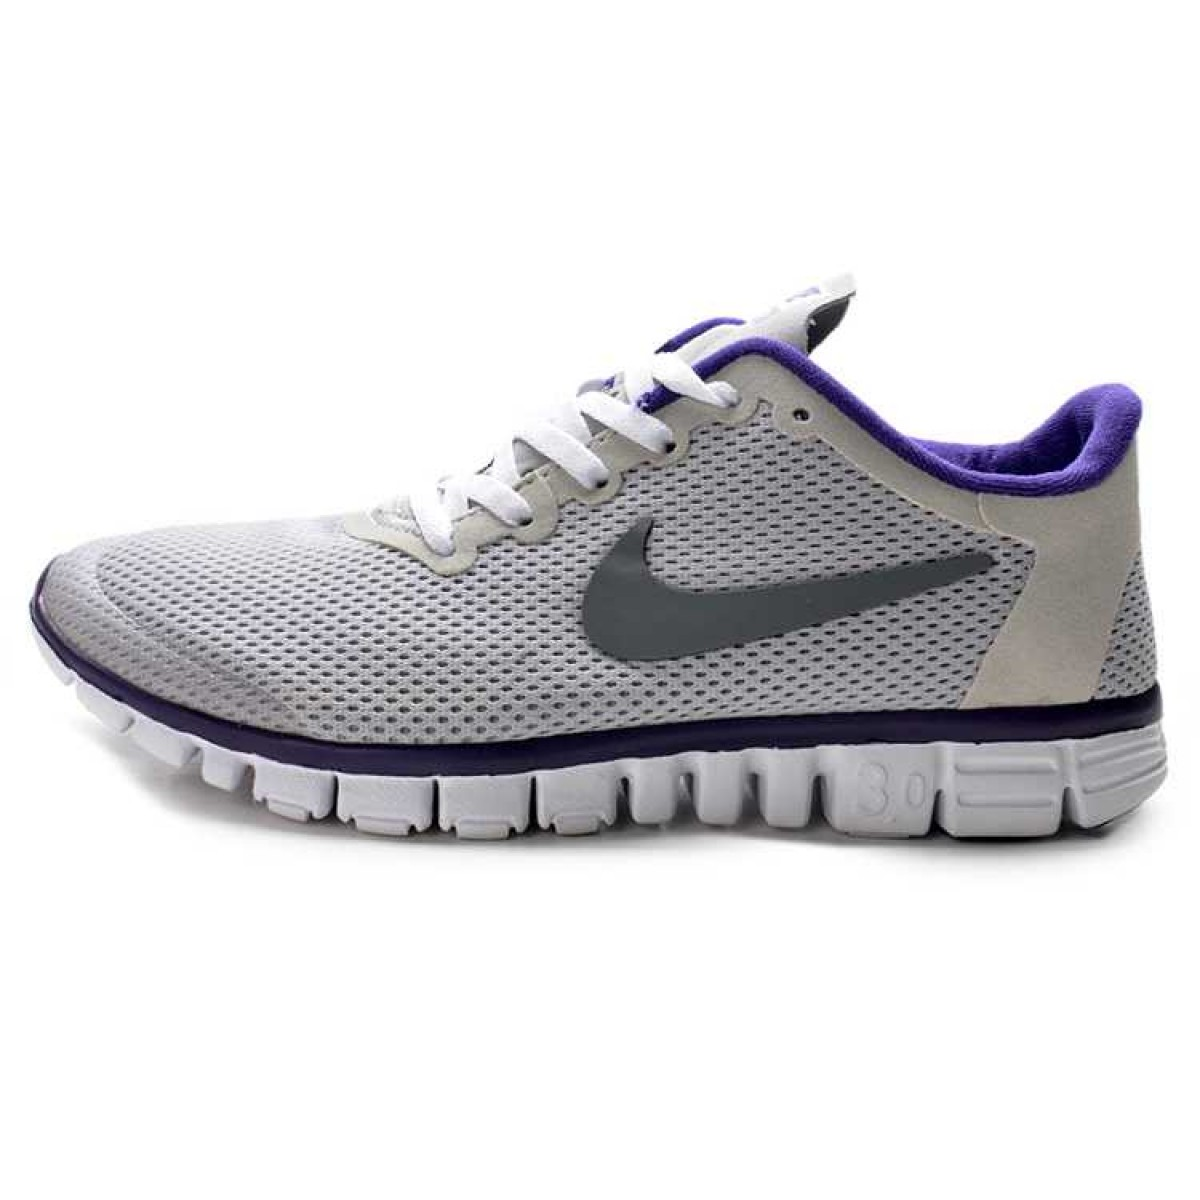 new products 55ddd 6177a Nike Free 3.0 V3 Femme Chaussures Pourpre Gris,nike free air jordan pas cher ,